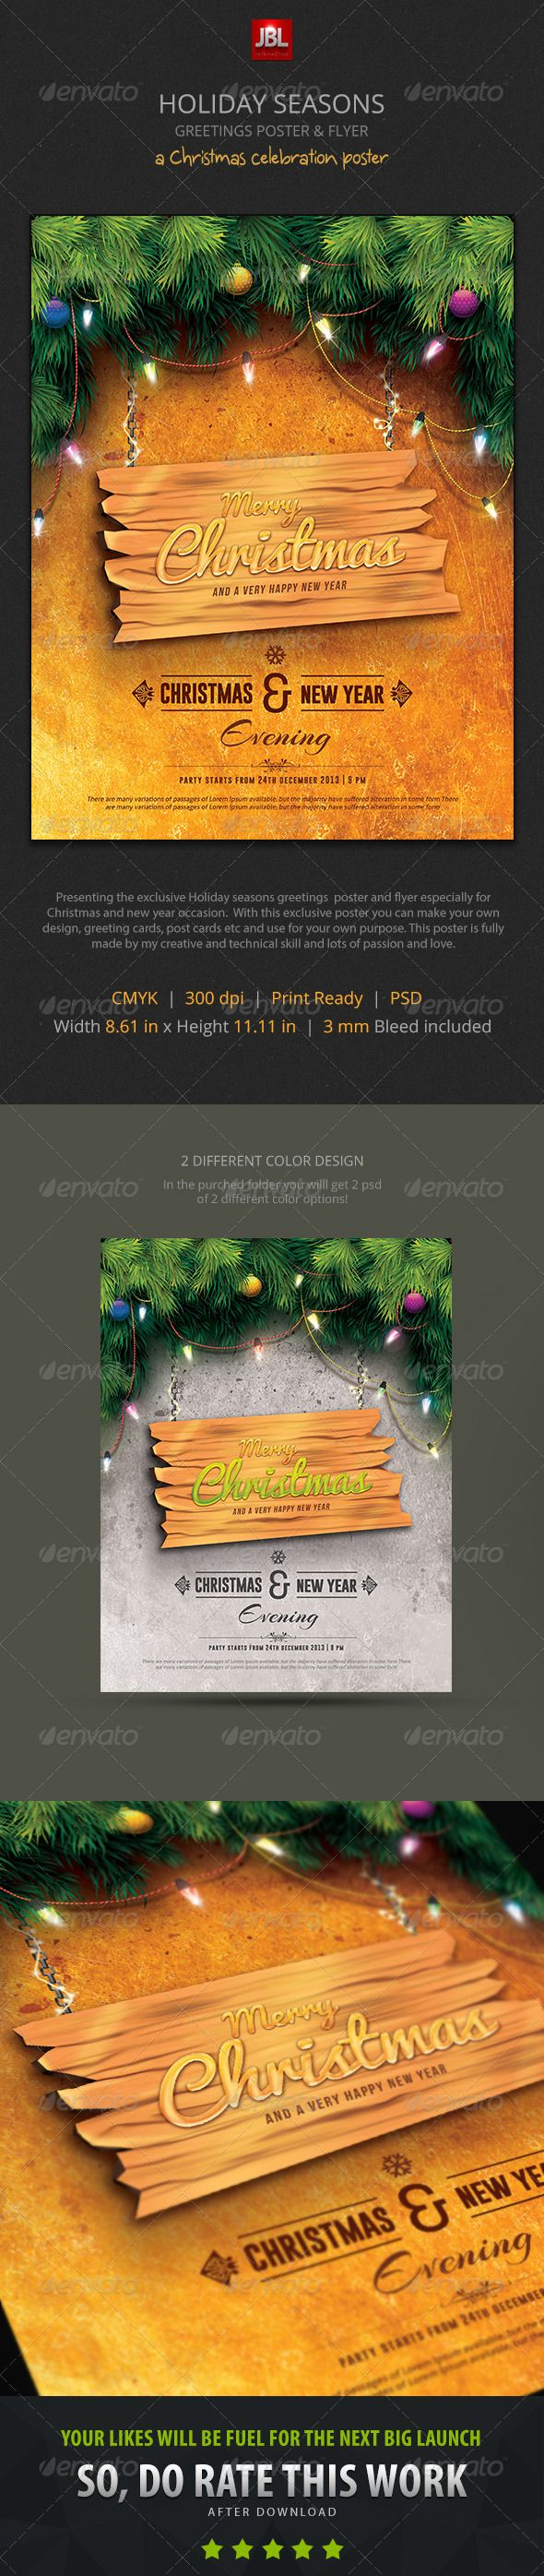 Holiday Seasons Greetings Poster and Flyer